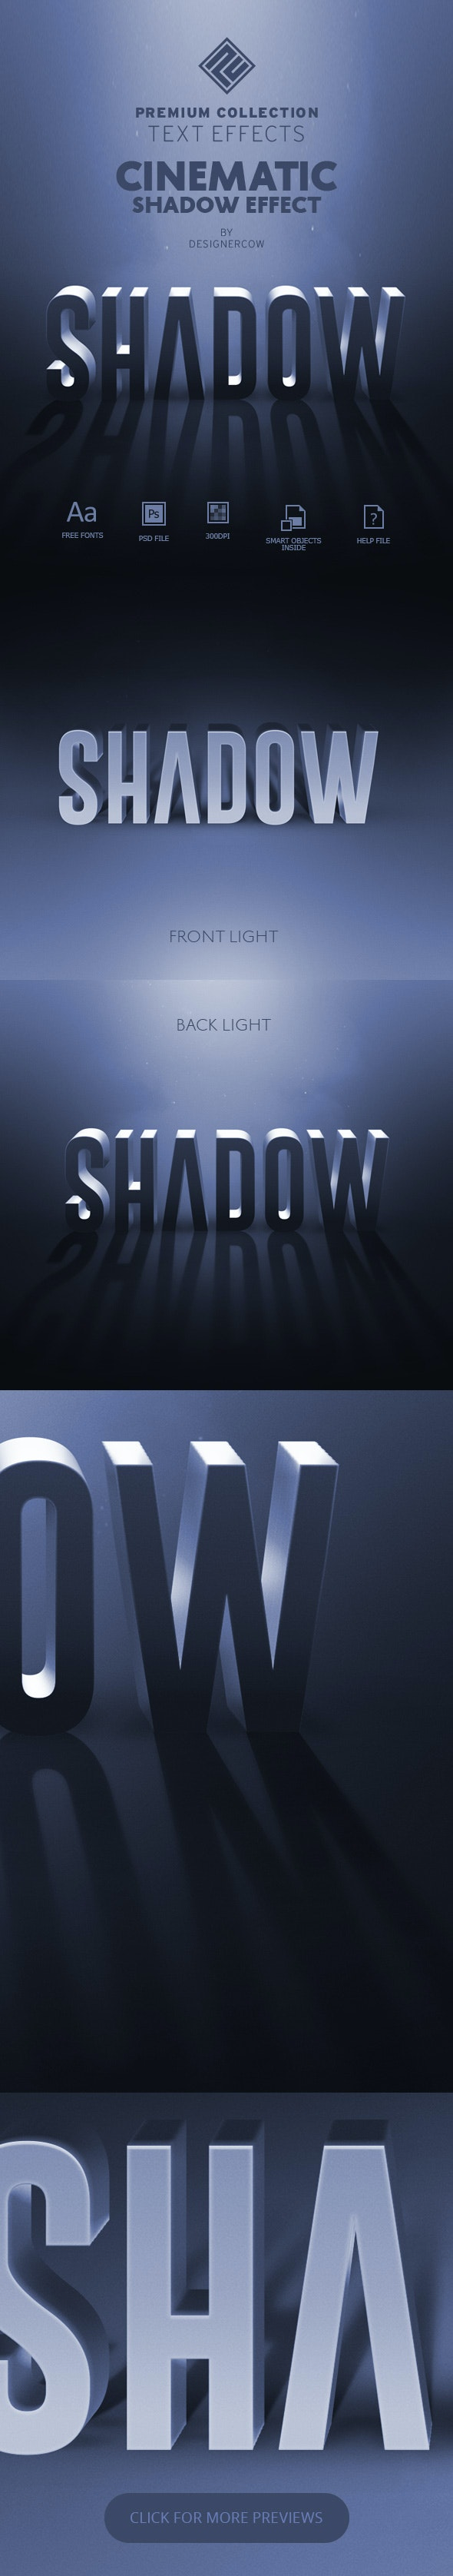 Cinematic Shadow Text Effect - Premium Collection - Text Effects Actions